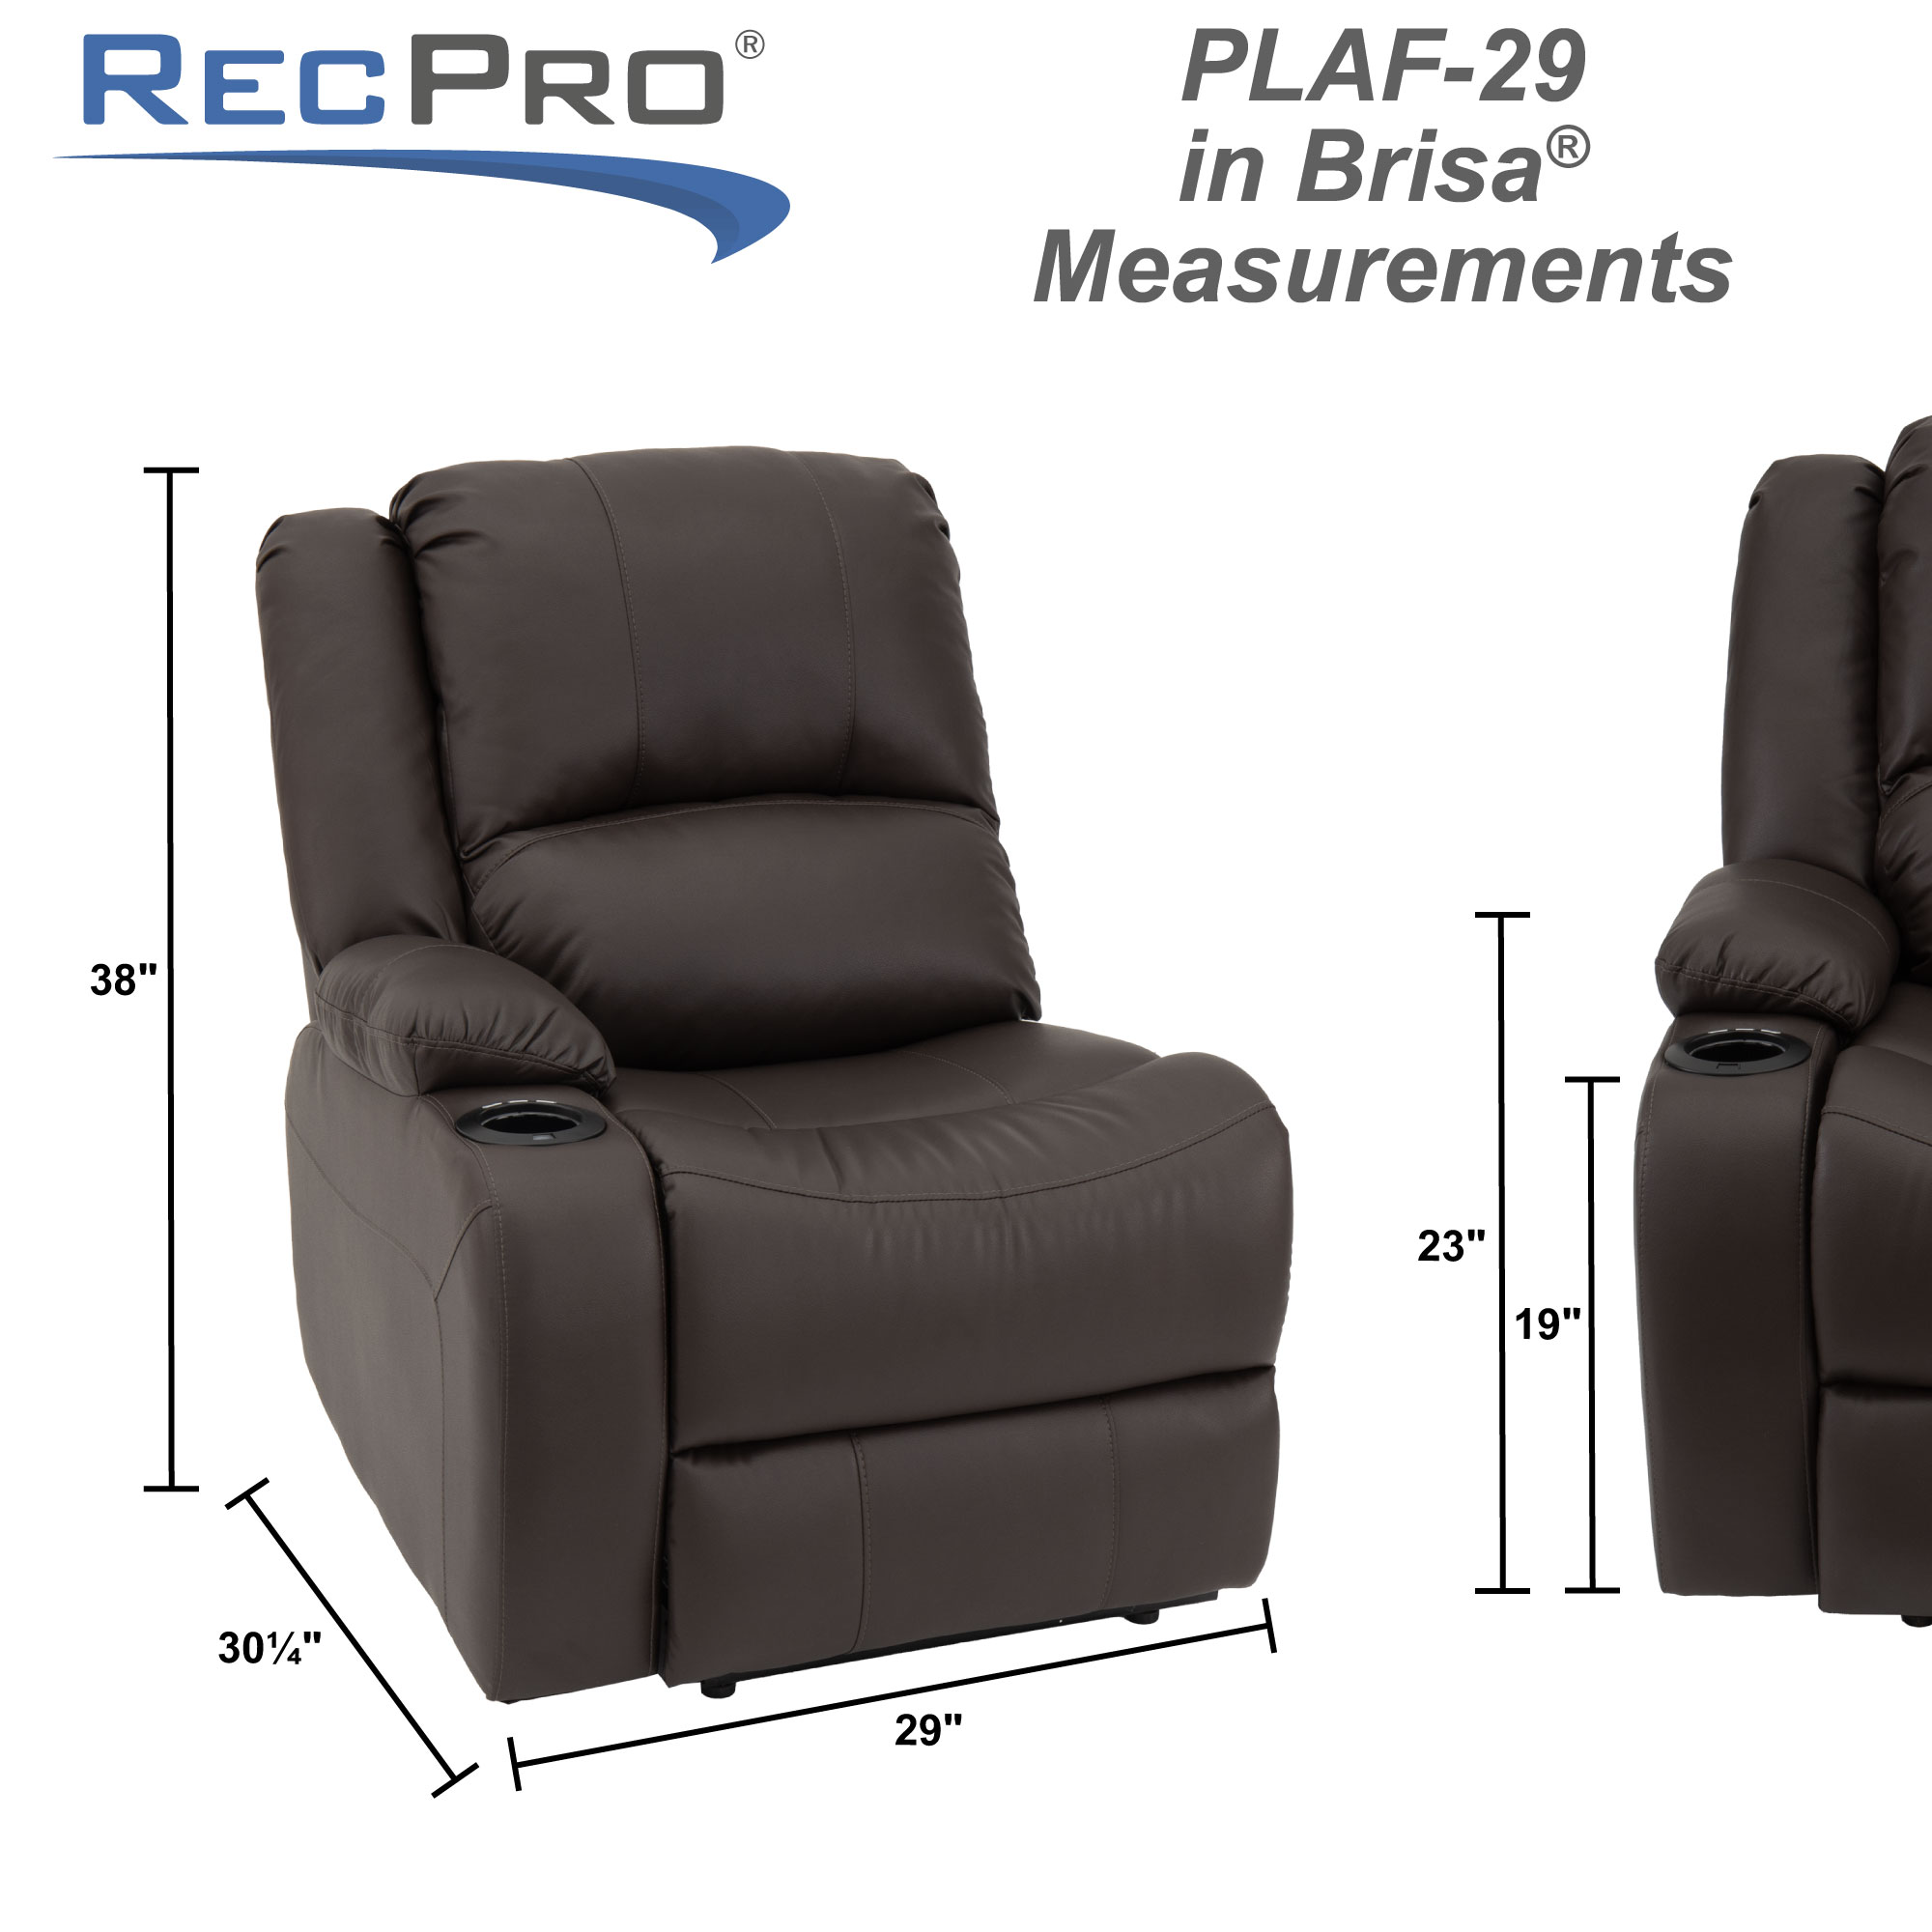 "RecPro Charles 29"" Powered Left Arm Recliner Modular RV Furniture Reclining Luxury Lounger in Ultrafabrics® Brisa® Measurments"